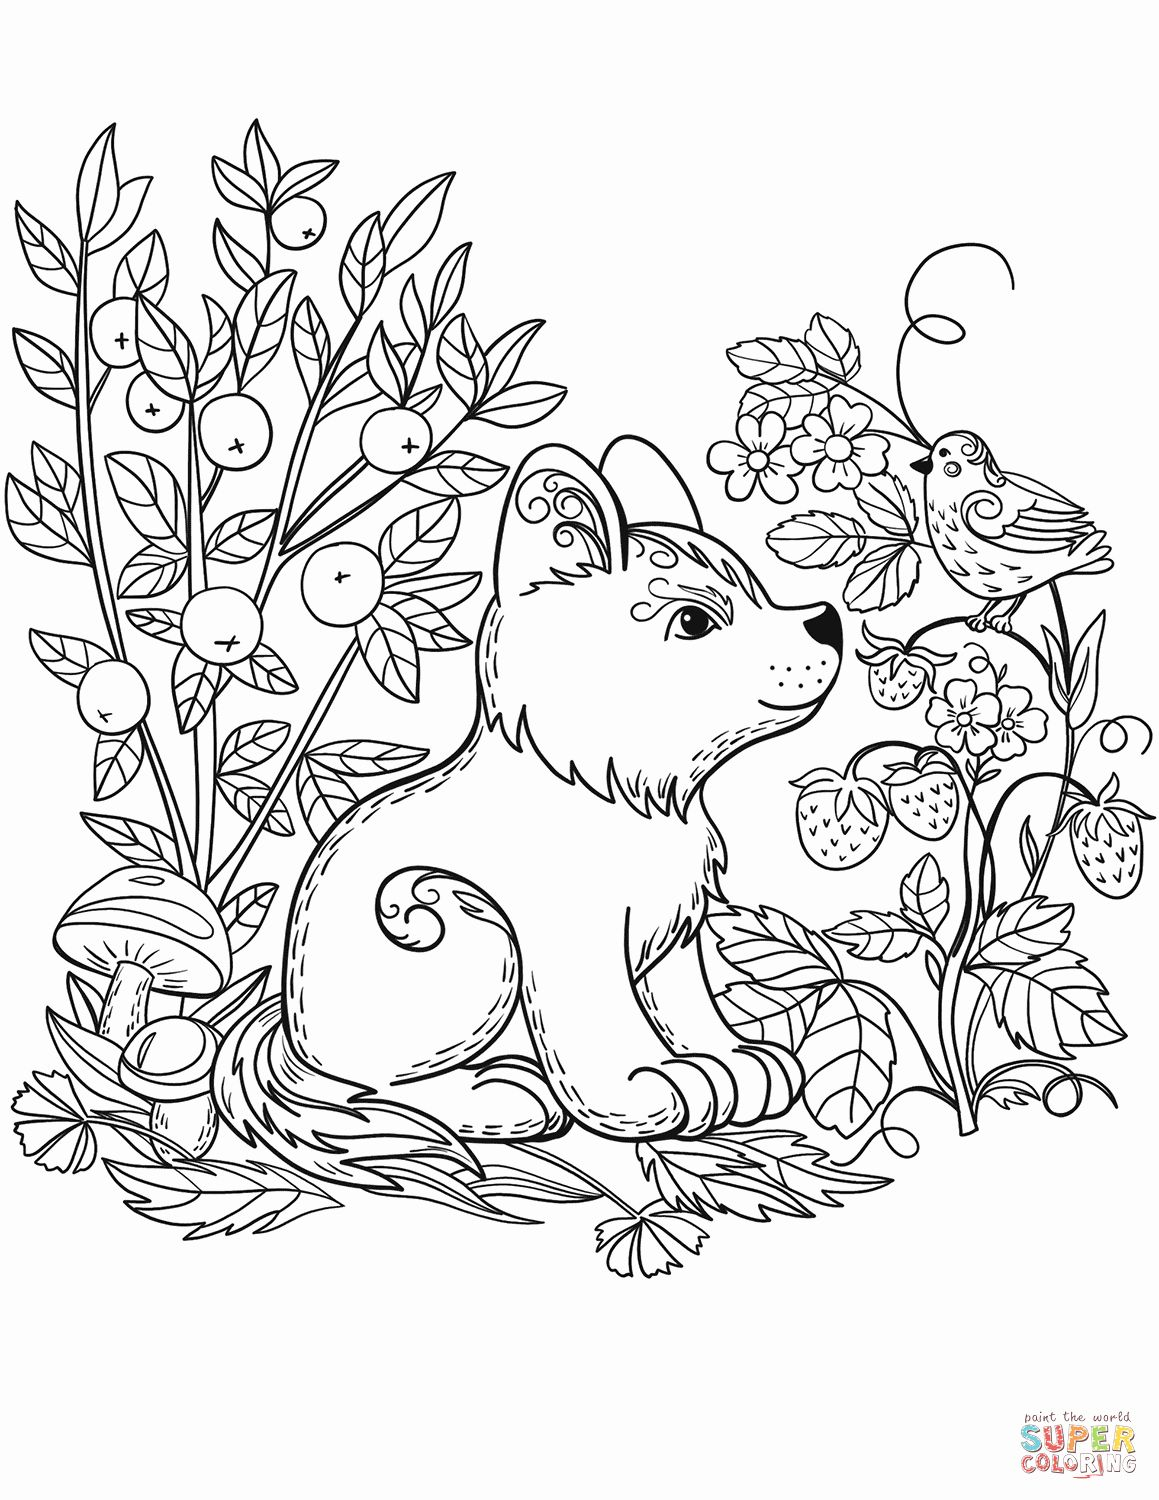 Free Woodland Animal Coloring Pages Fresh Puppy Dog In the